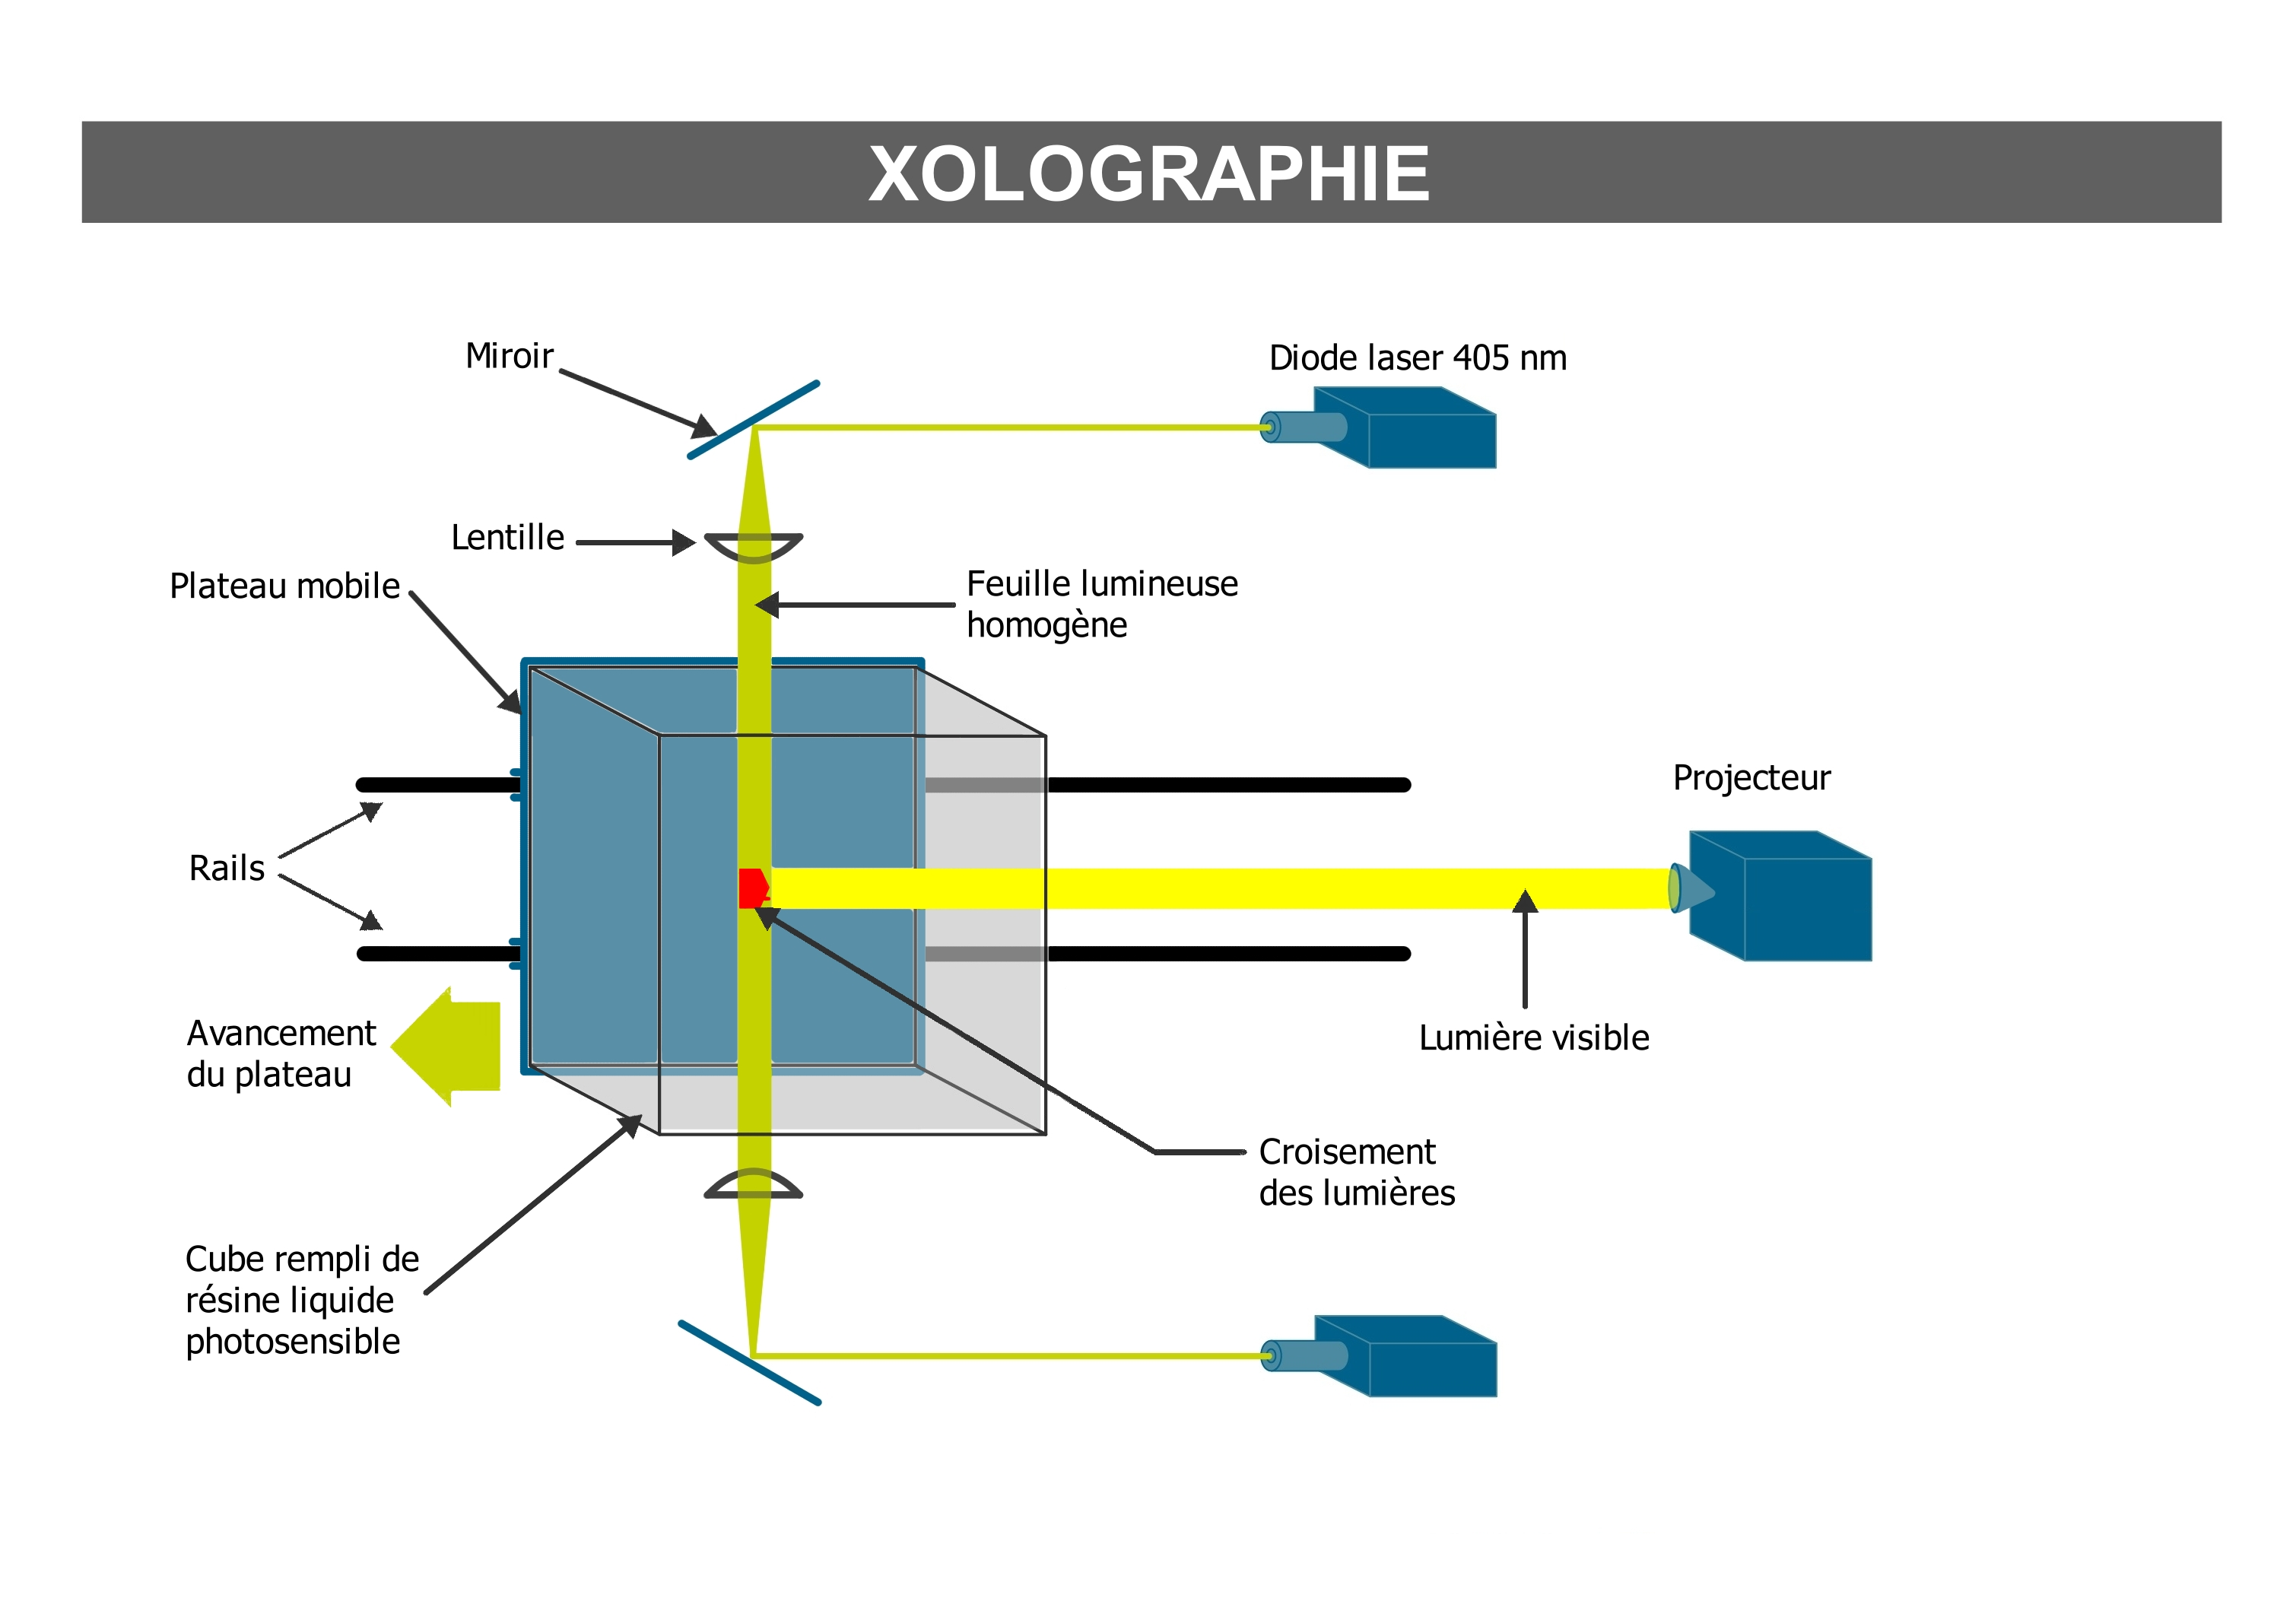 Fabrication additive - Processus Xolographie